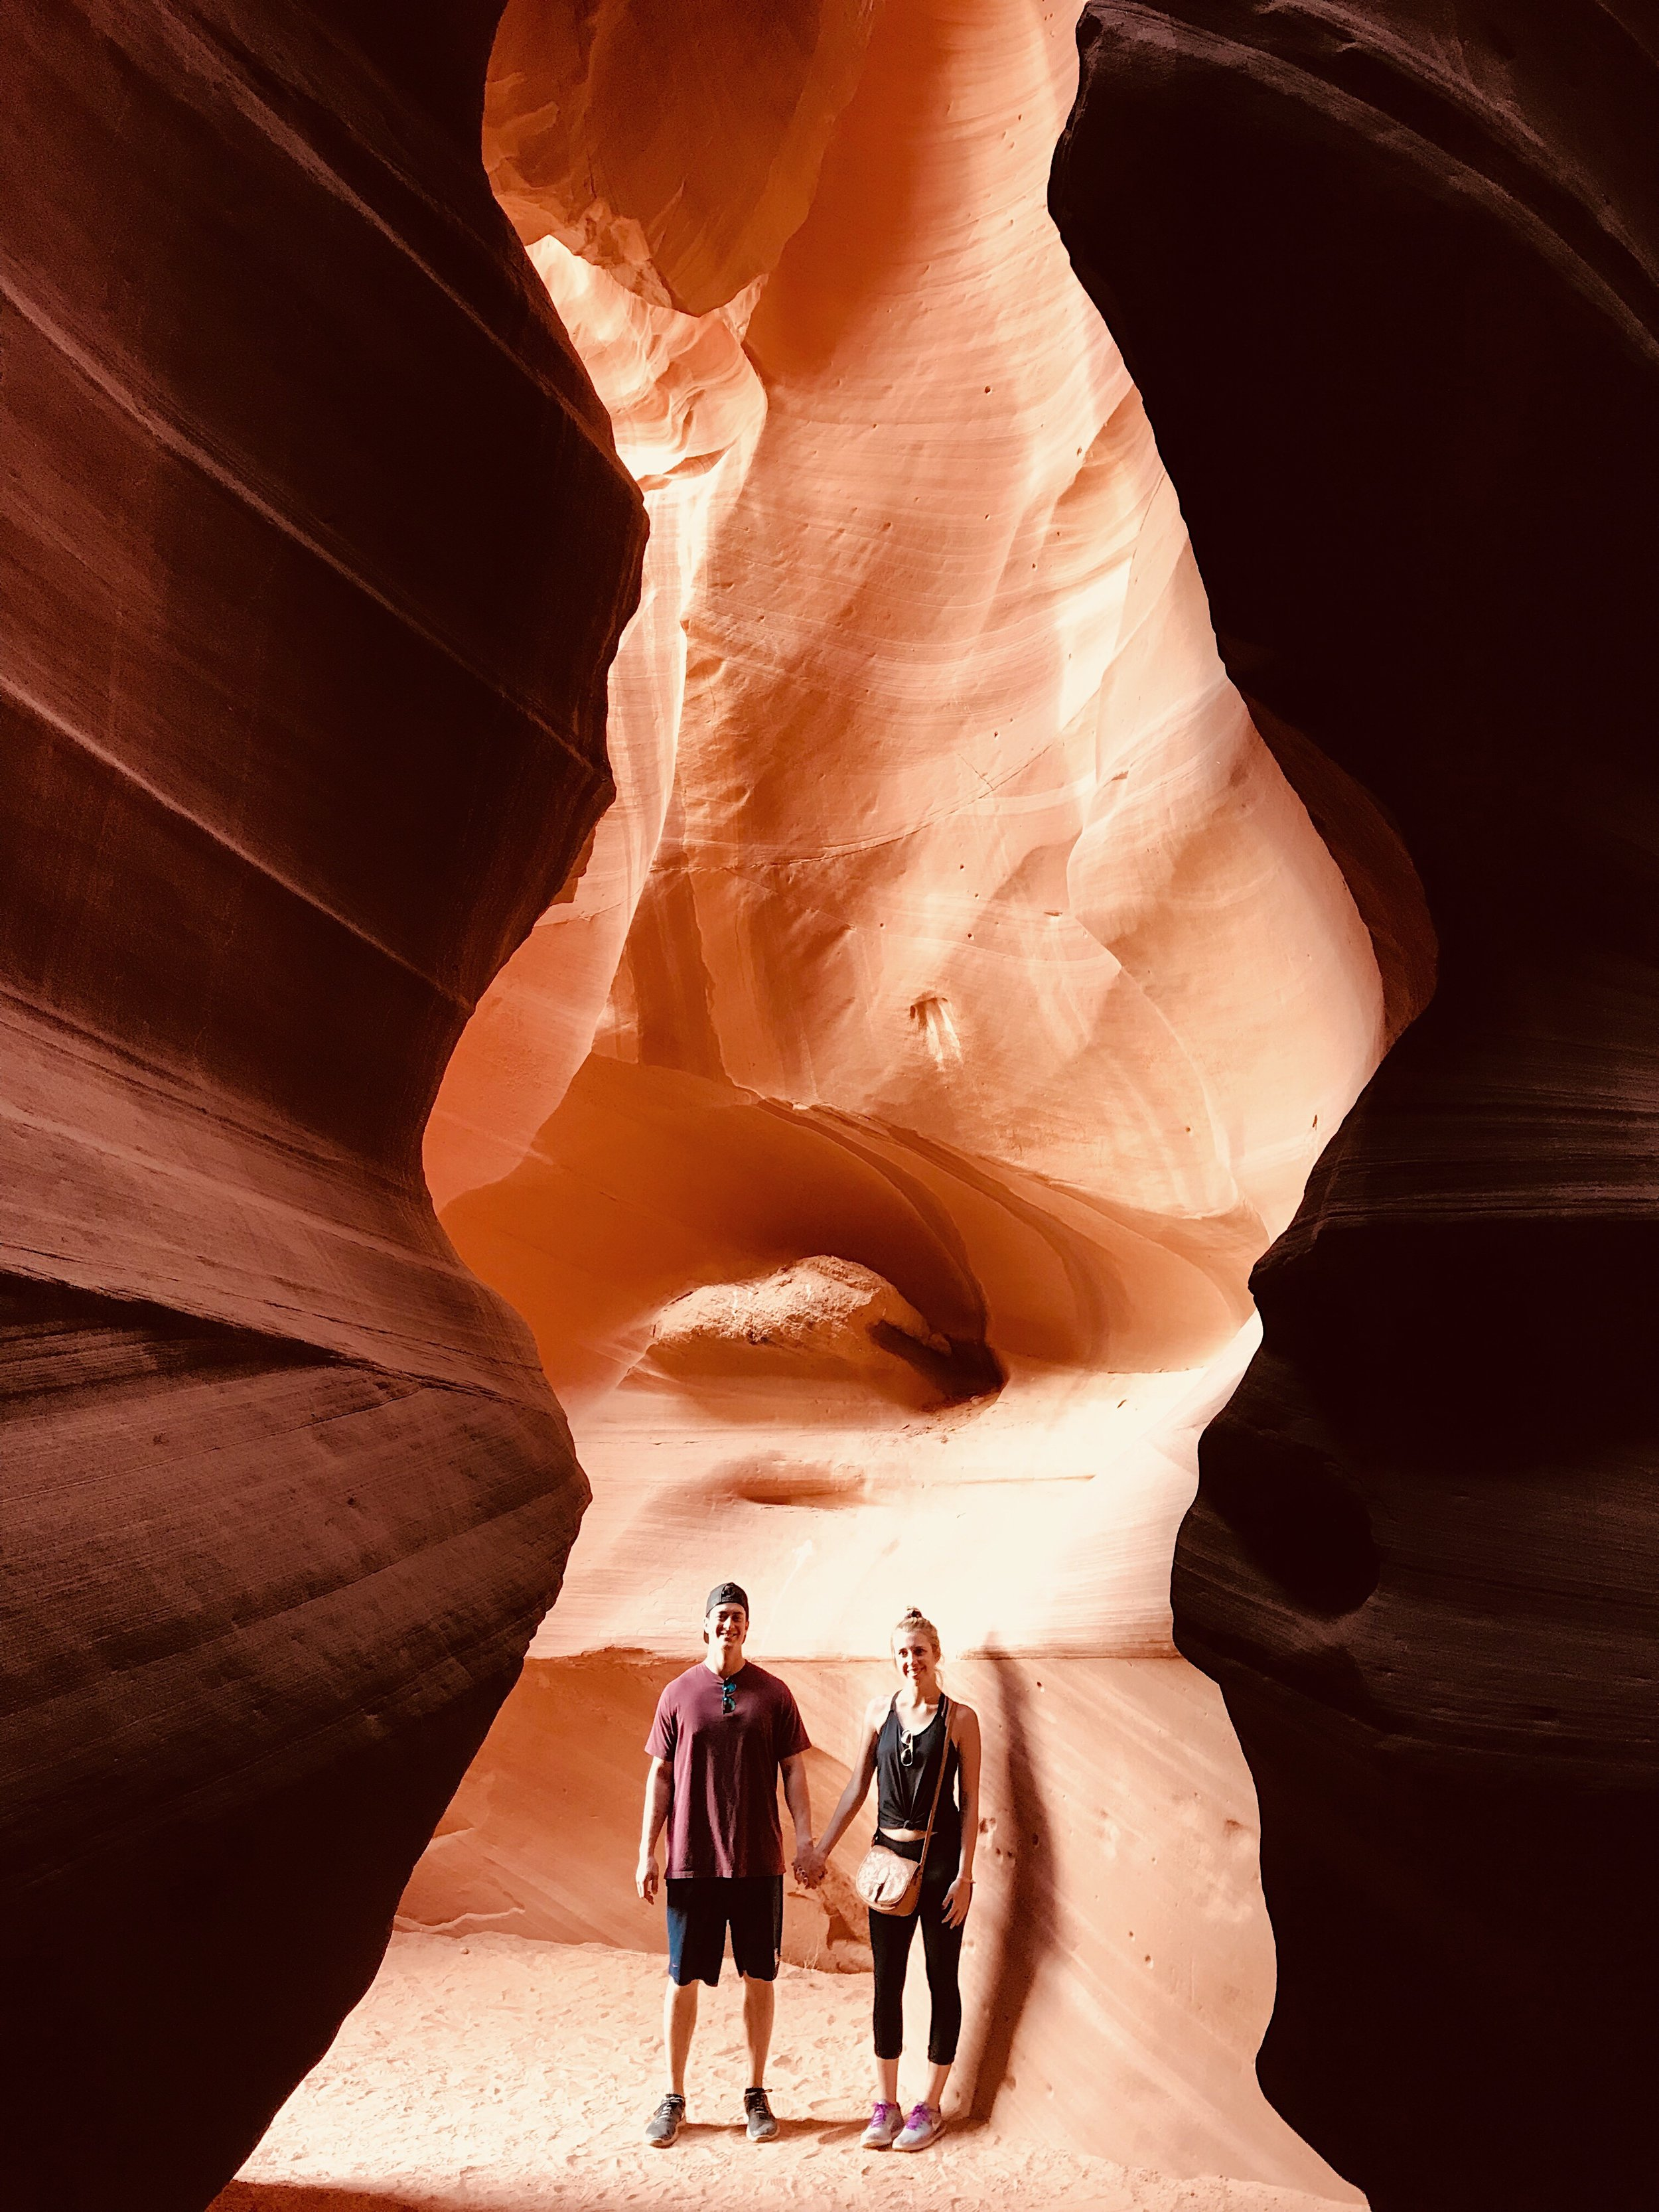 Alec & I in the entrance of Antelope Canyon. Photo cred: Tour Guide Cindy of Anetelope Canyon Tours!